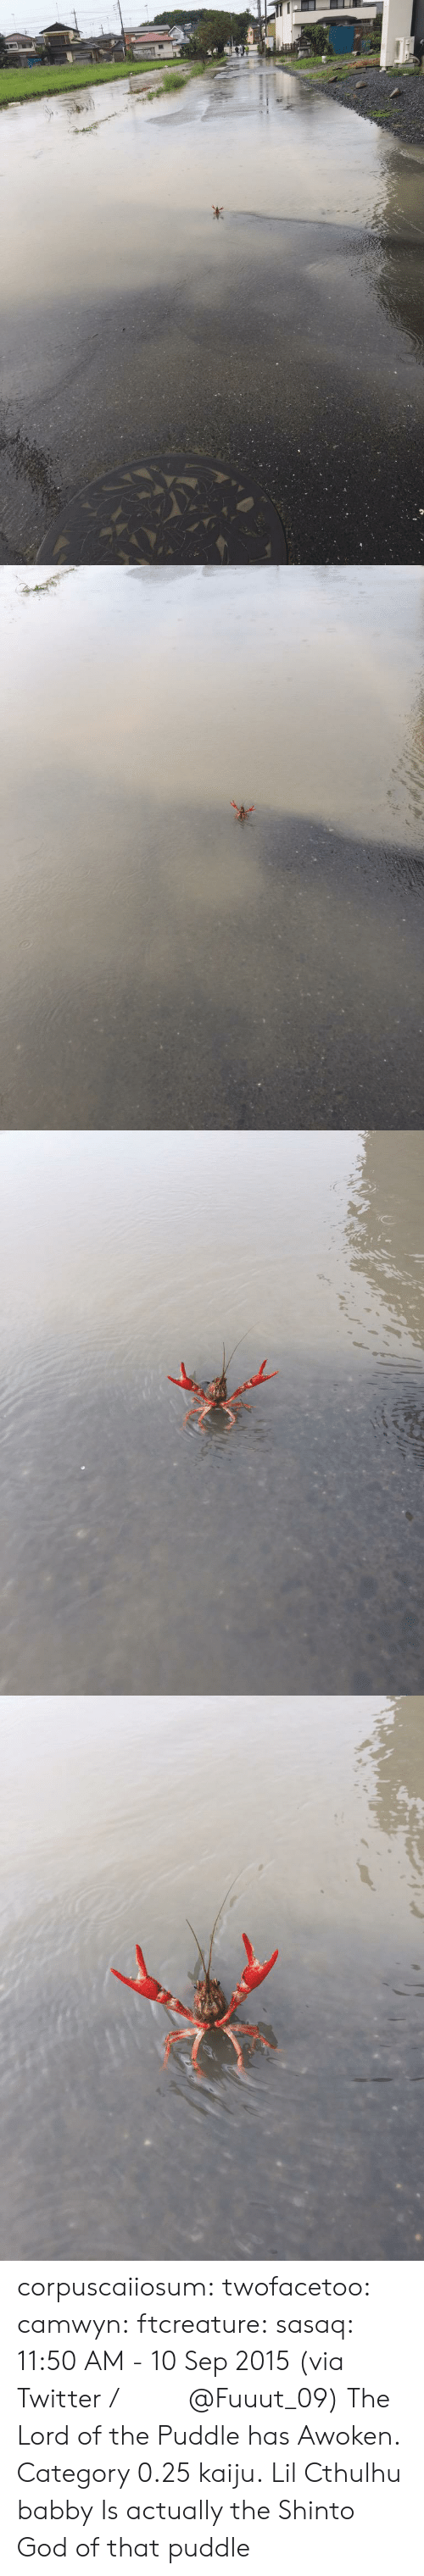 10 Sep: corpuscaiiosum: twofacetoo:   camwyn:  ftcreature:  sasaq:  11:50 AM - 10 Sep 2015 (via Twitter / ふ み な @Fuuut_09)   The Lord of the Puddle has Awoken.  Category 0.25 kaiju.  Lil Cthulhu babby   Is actually the Shinto God of that puddle